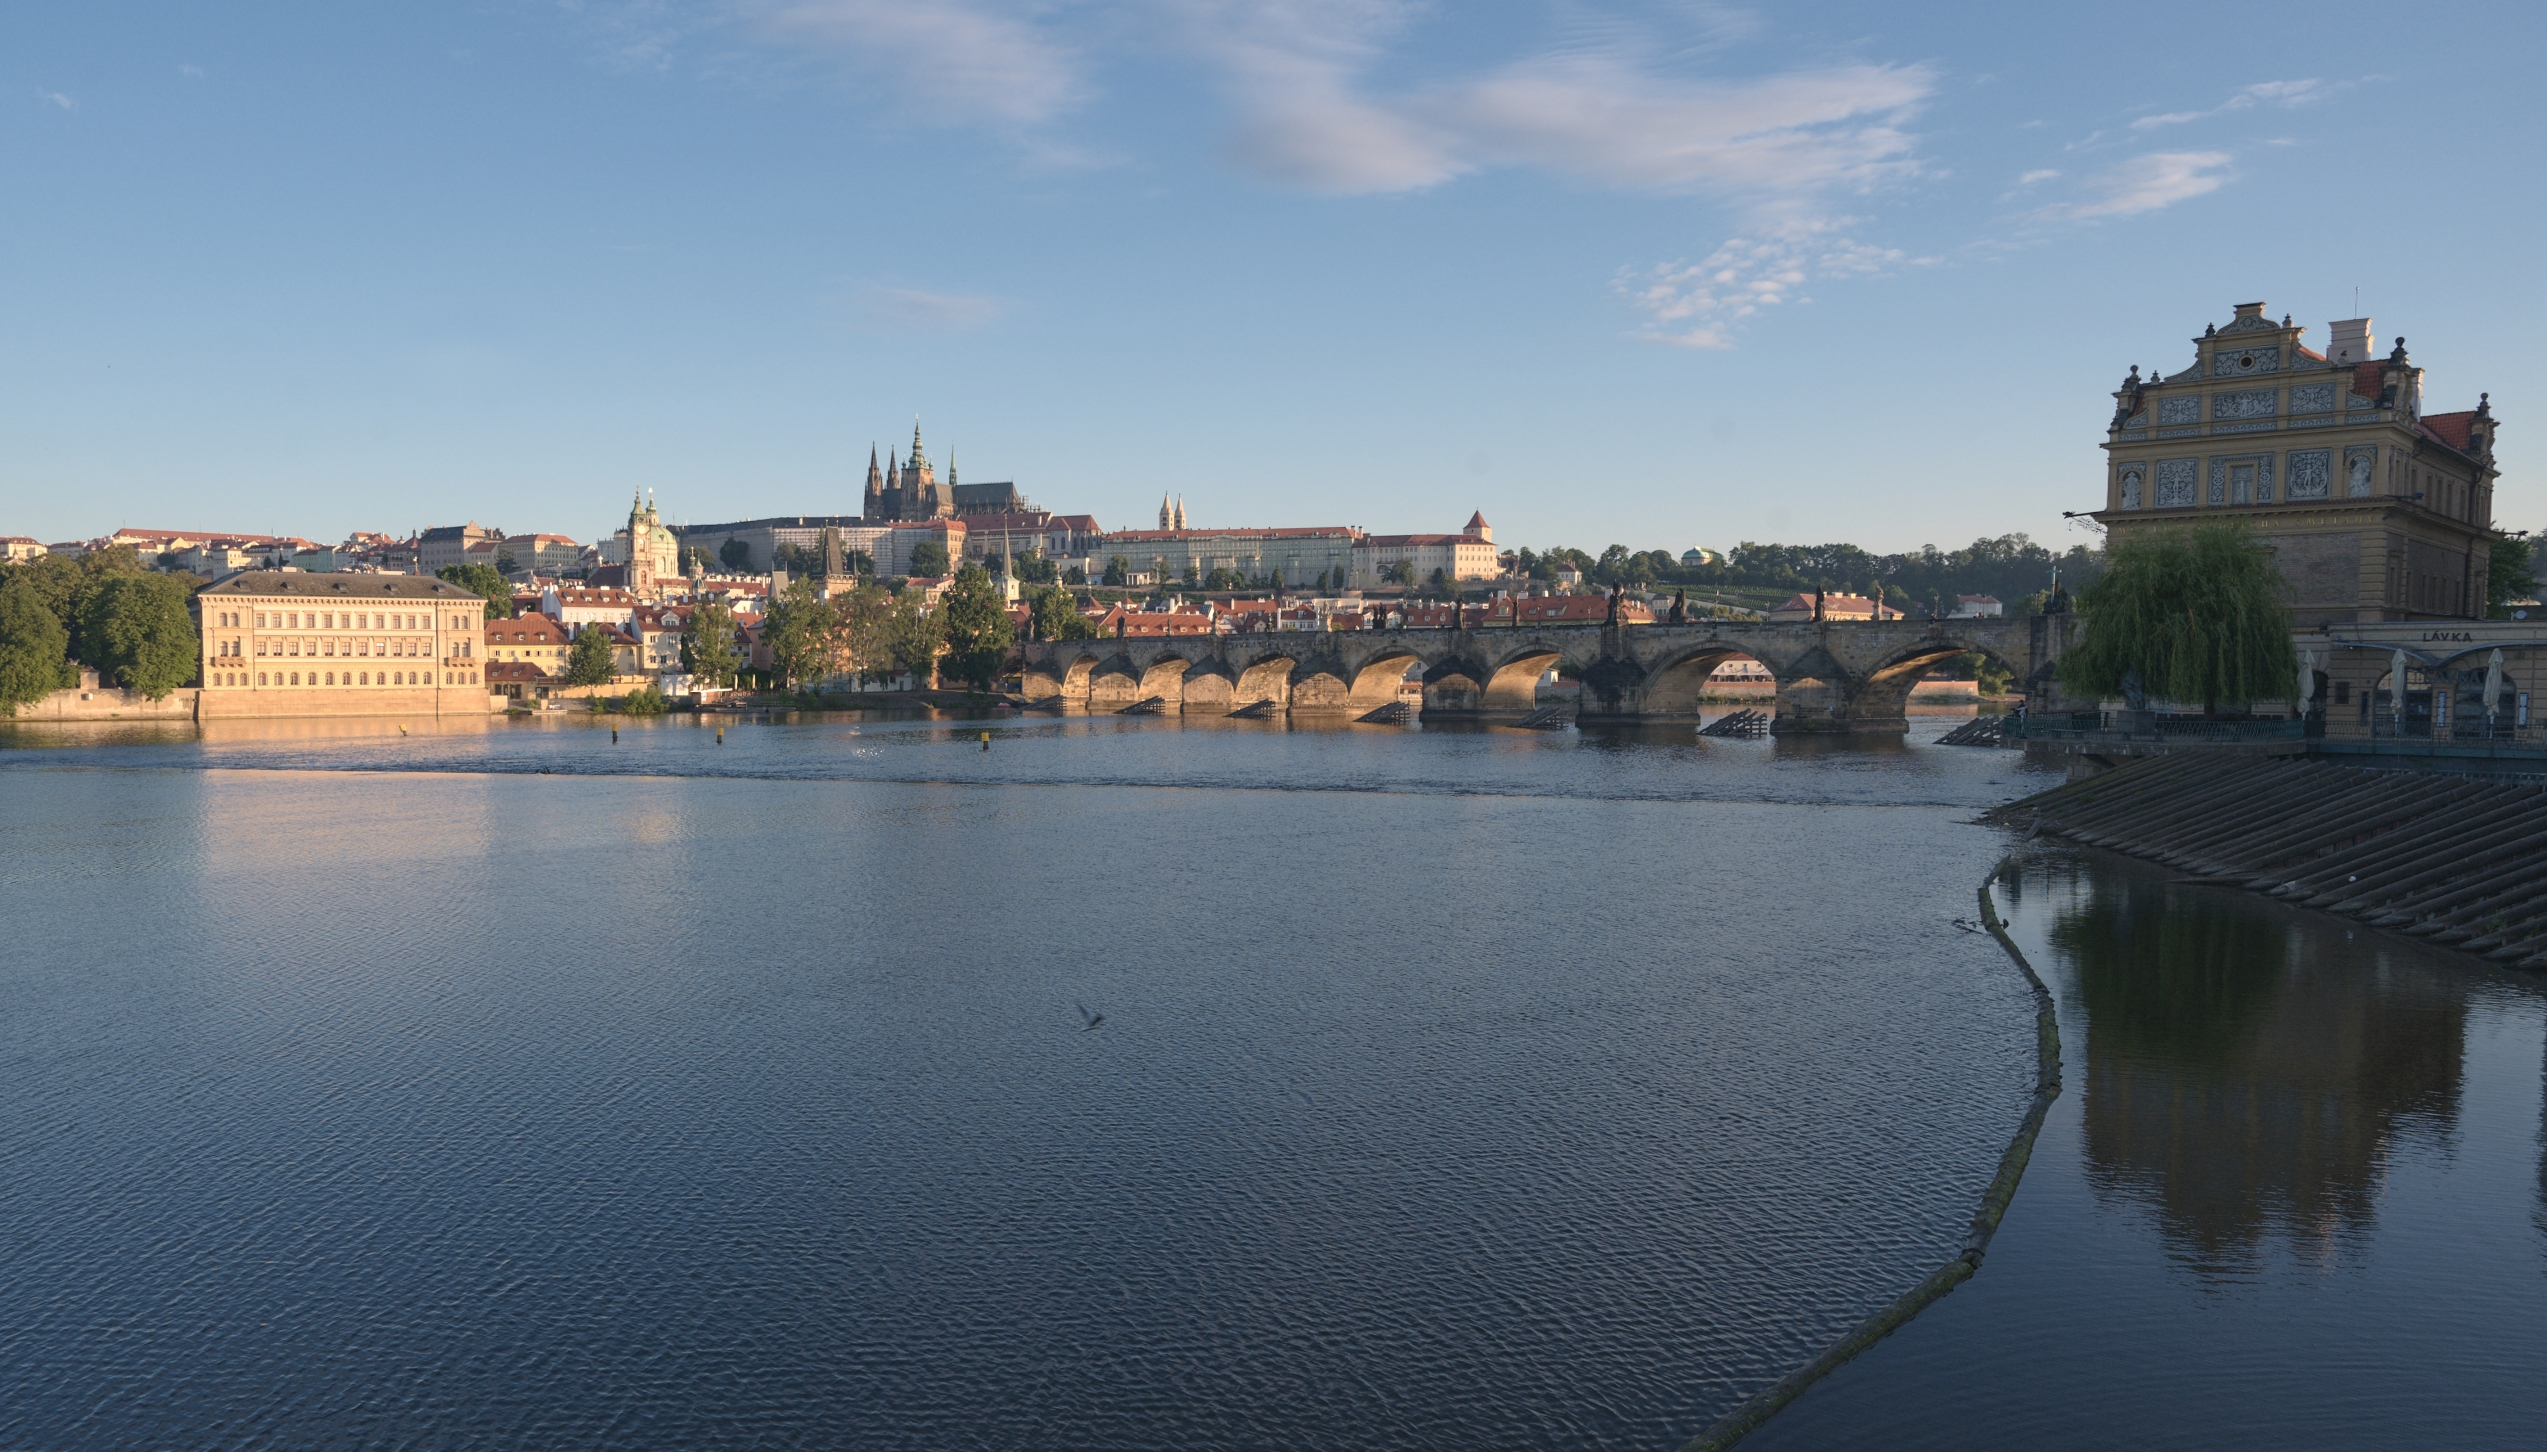 Hradčany, Charles Bridge